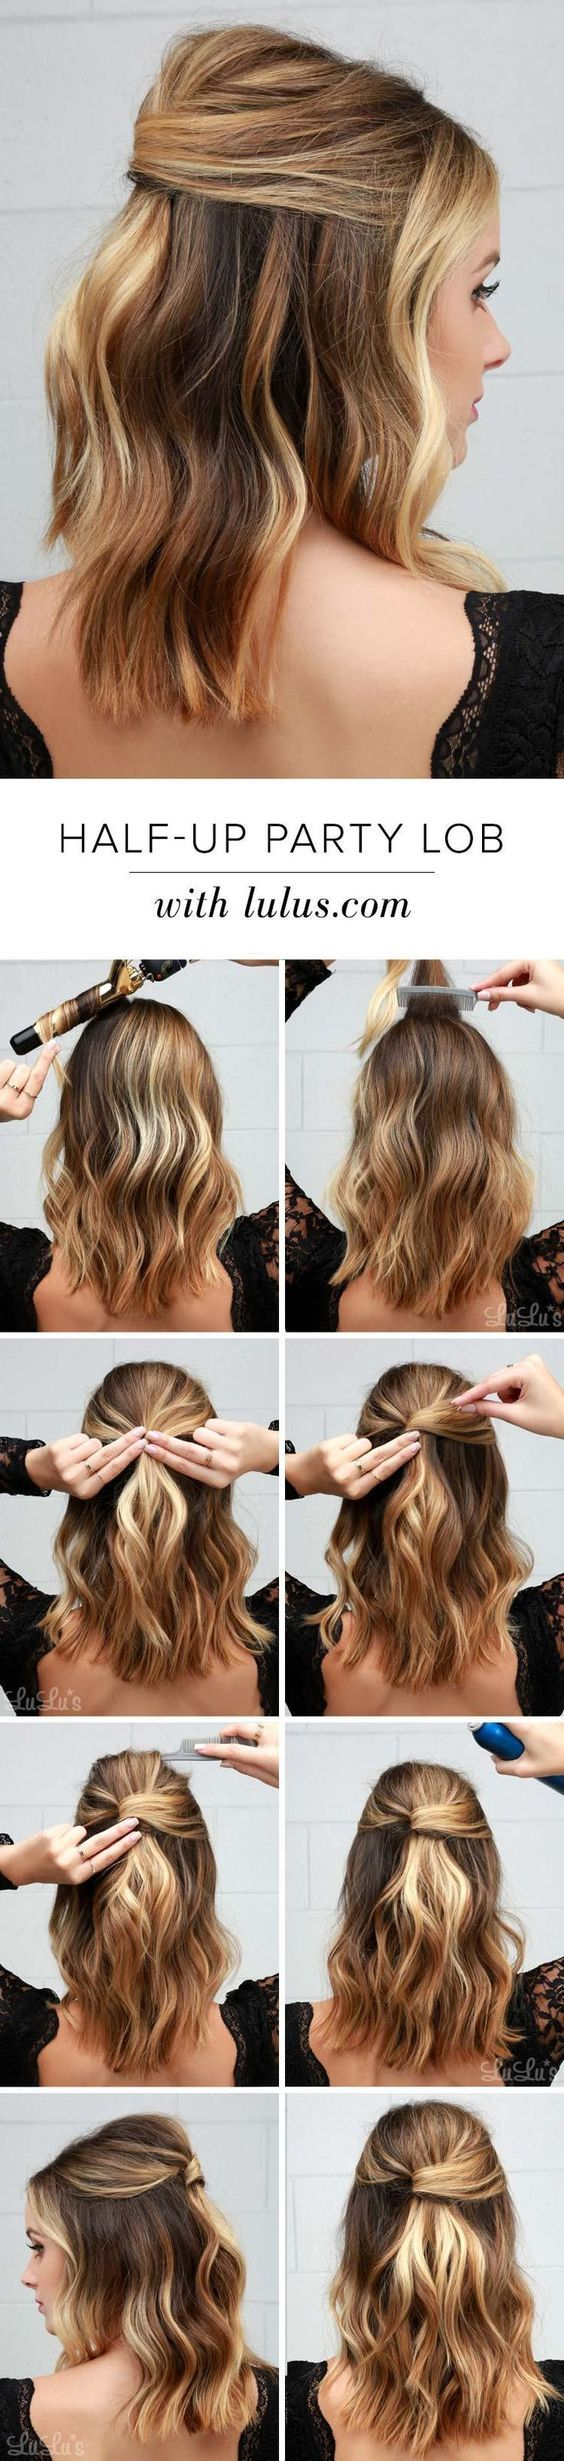 best do the udo images on pinterest hairstyle ideas new